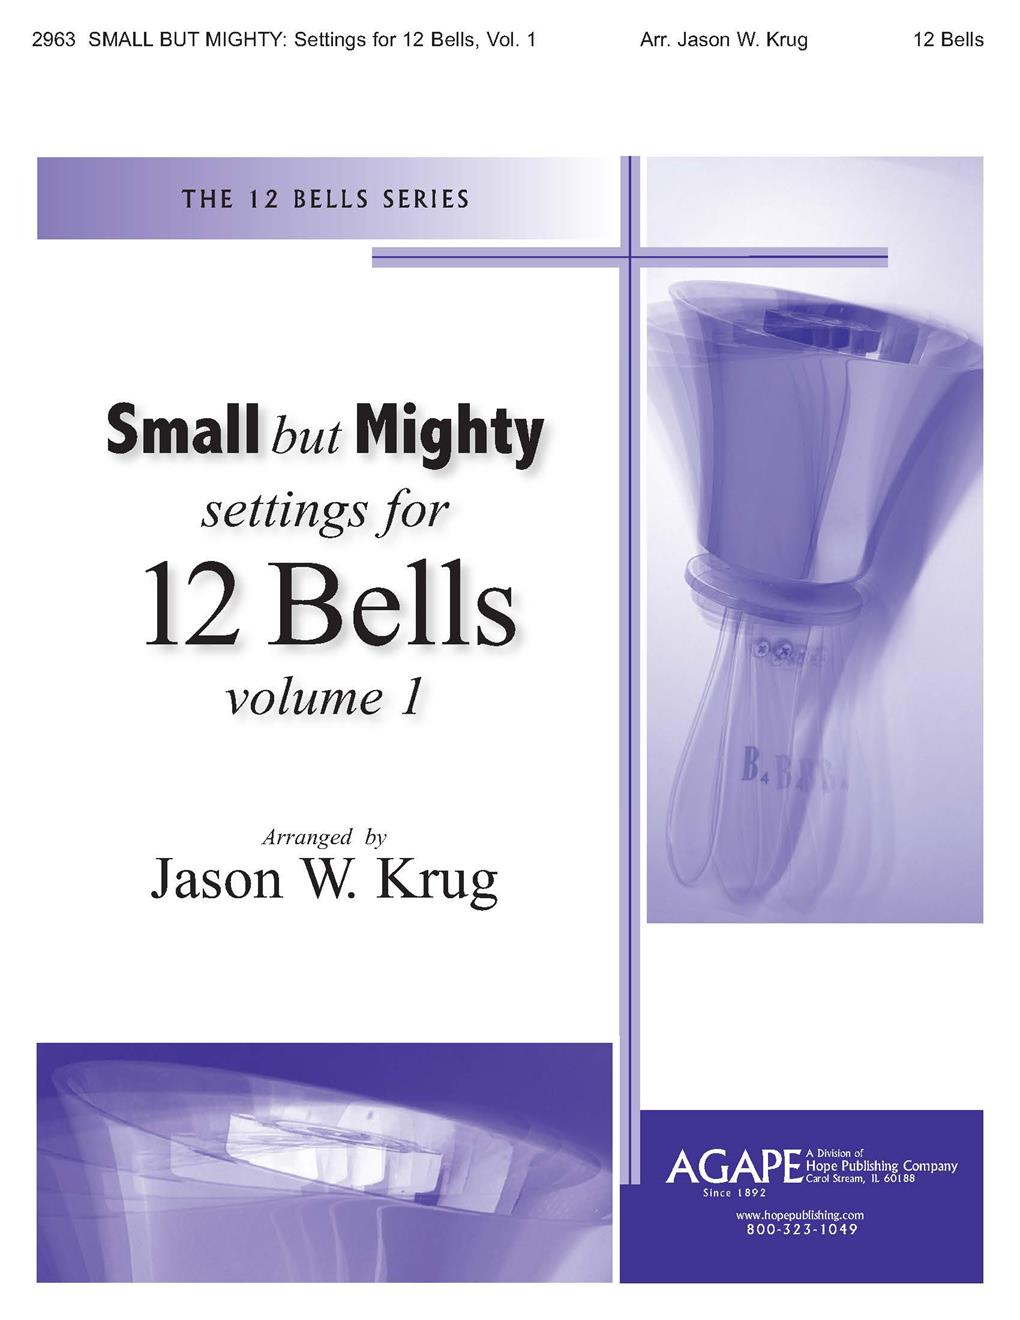 Small but Mighty Vol 1 for 12 Bells - Krug Cover Image